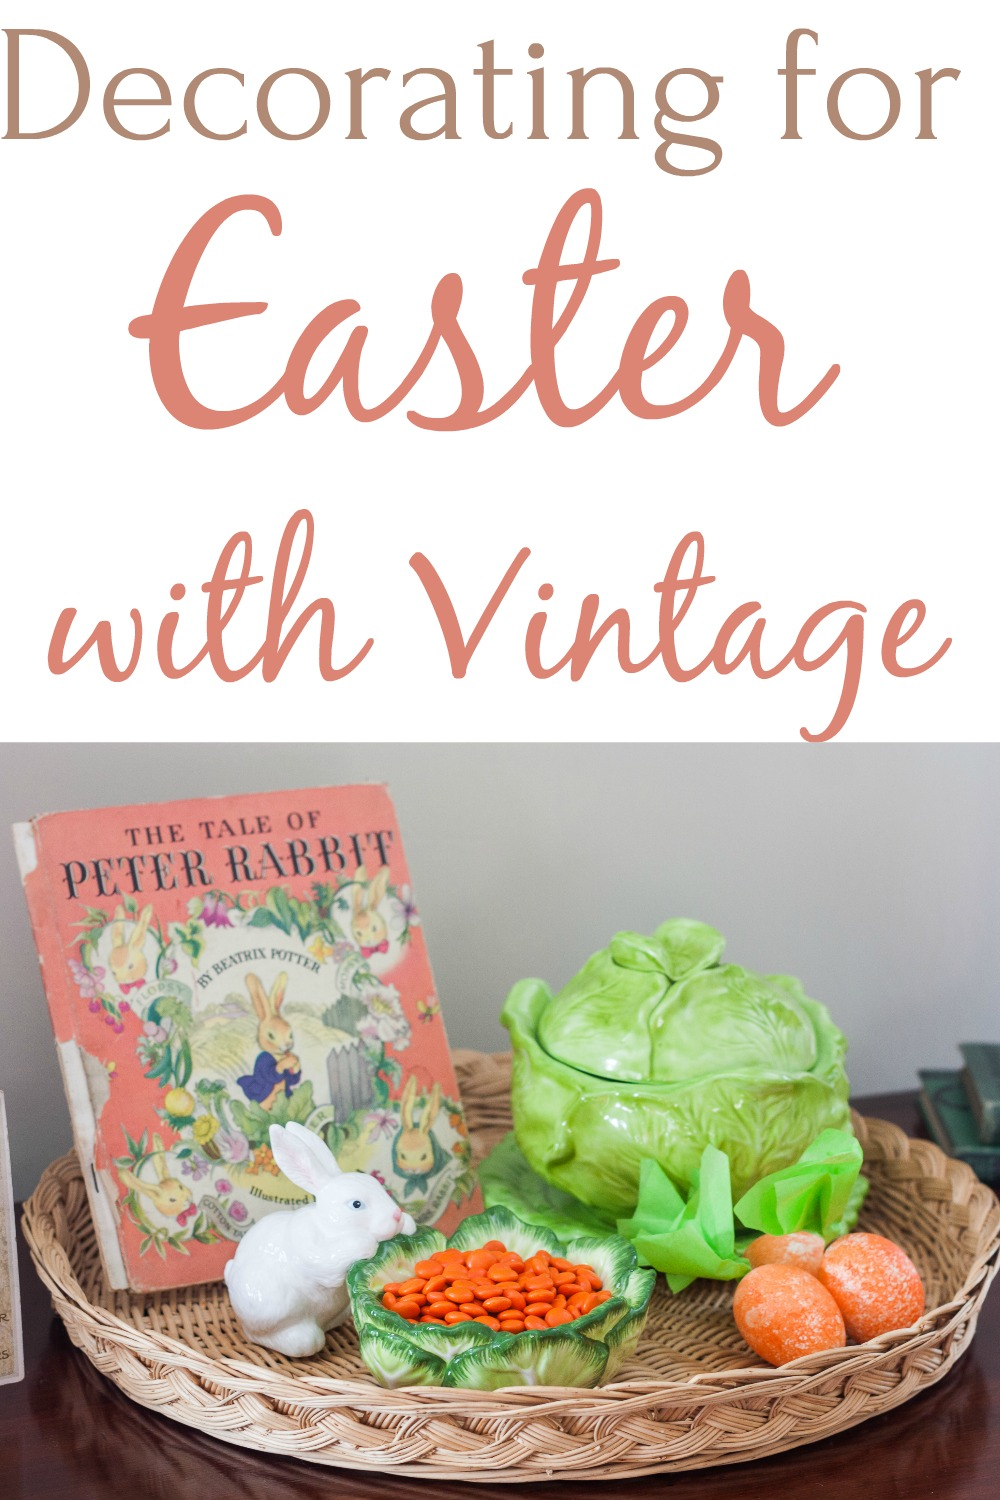 Decorating for Easter with Vintage - See a home decorated for Easter with traditional Easter decor combined with vintage pieces. Get ideas for Easter decor from this post plus from 30+ home decor bloggers. #easter #easterdecor #easterdecorations #vintage #vintagedecor via @spaula